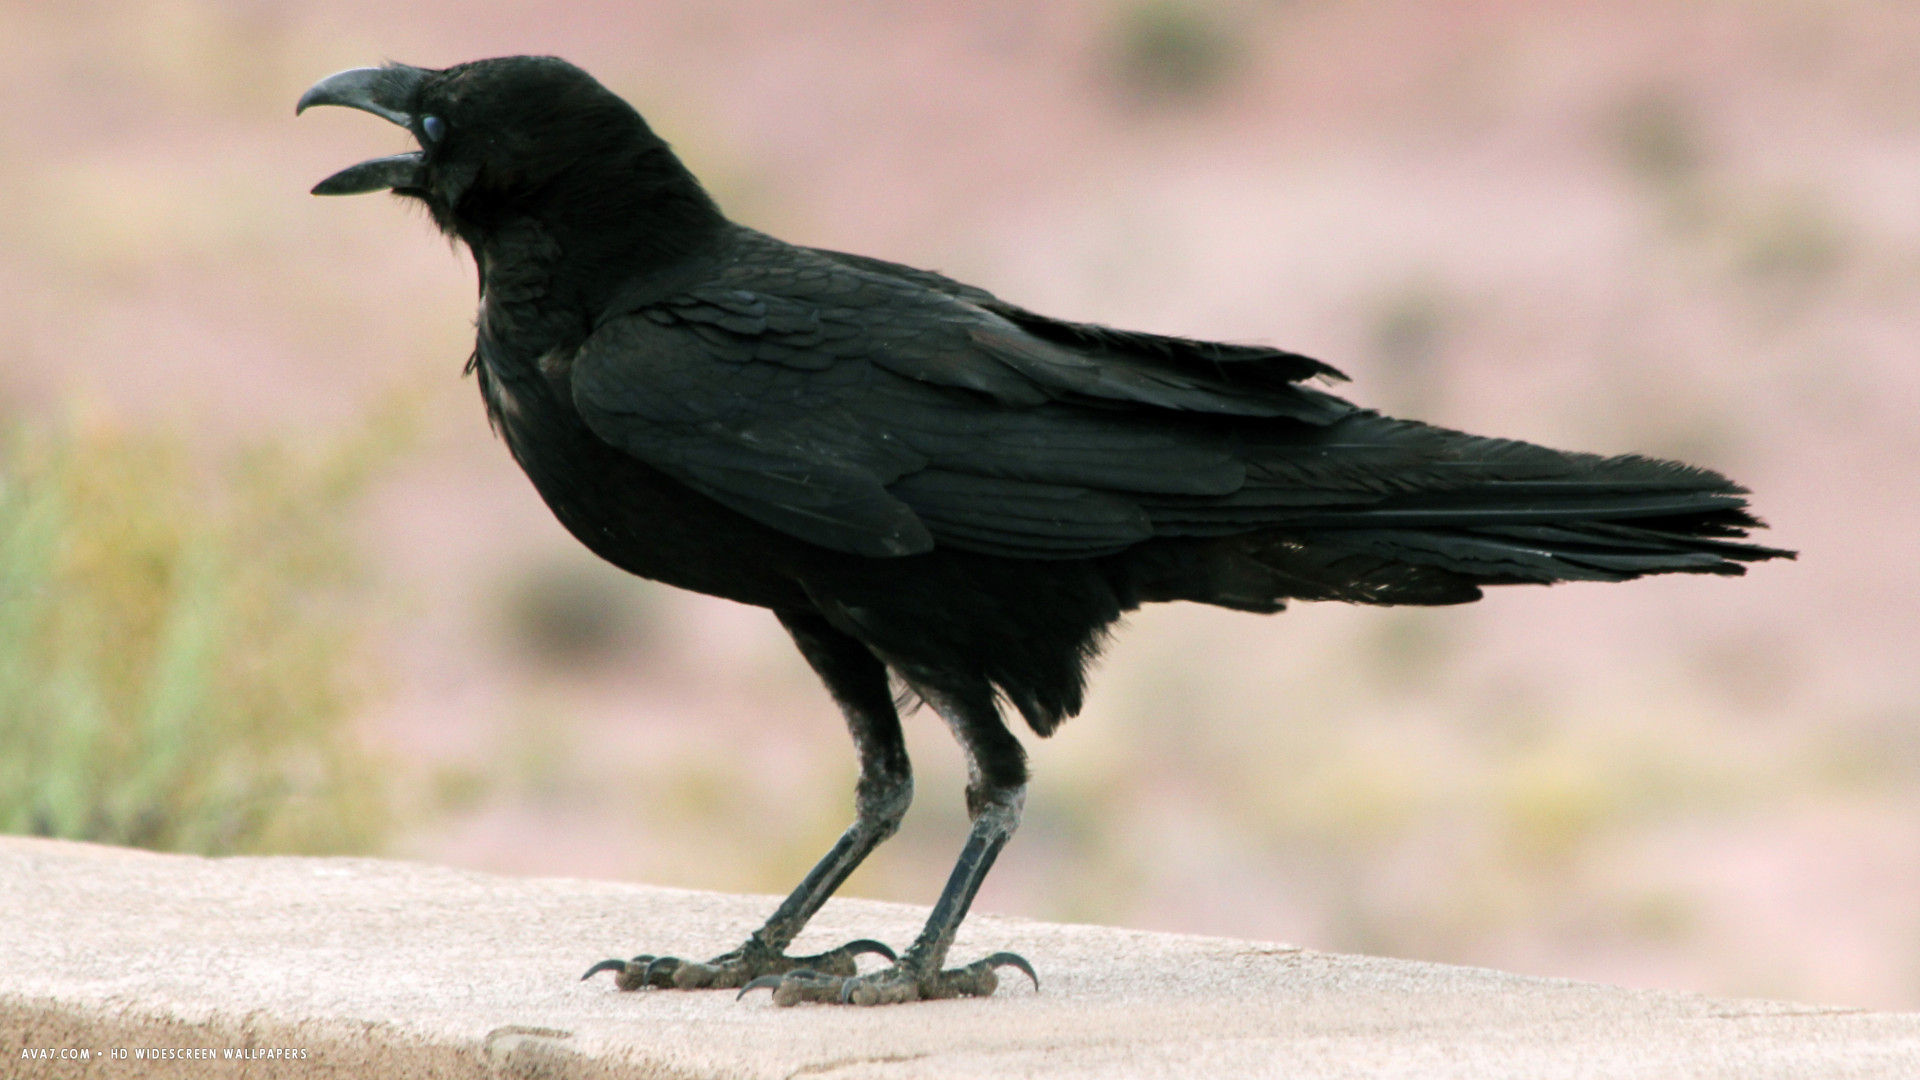 raven chihuahuan corvus cryptoleucus bird hd widescreen wallpaper 1920x1080